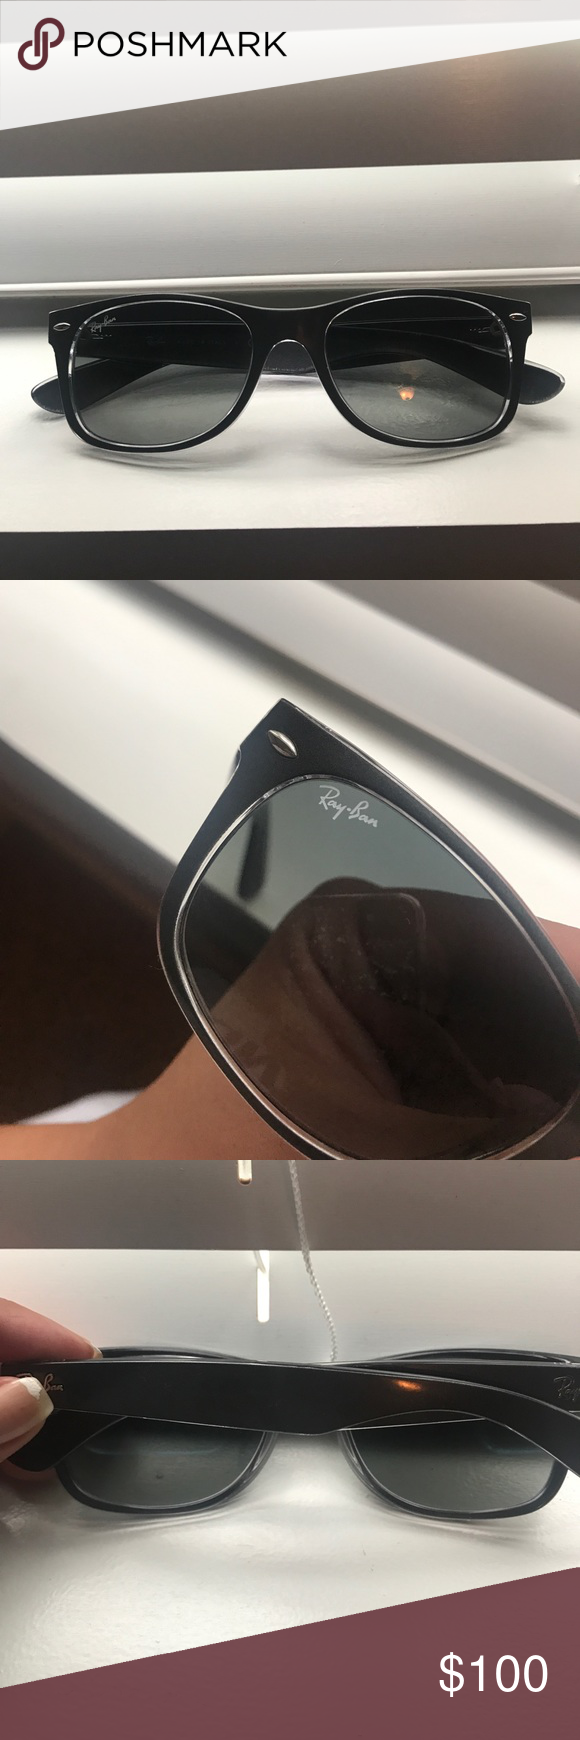 Ray-ban Wayfarer Sunglasses Color is Gunmetal Grey. Brand new worn a few times, no scratches. Perfect condition. Unisex. Ray-Ban Accessories Sunglasses